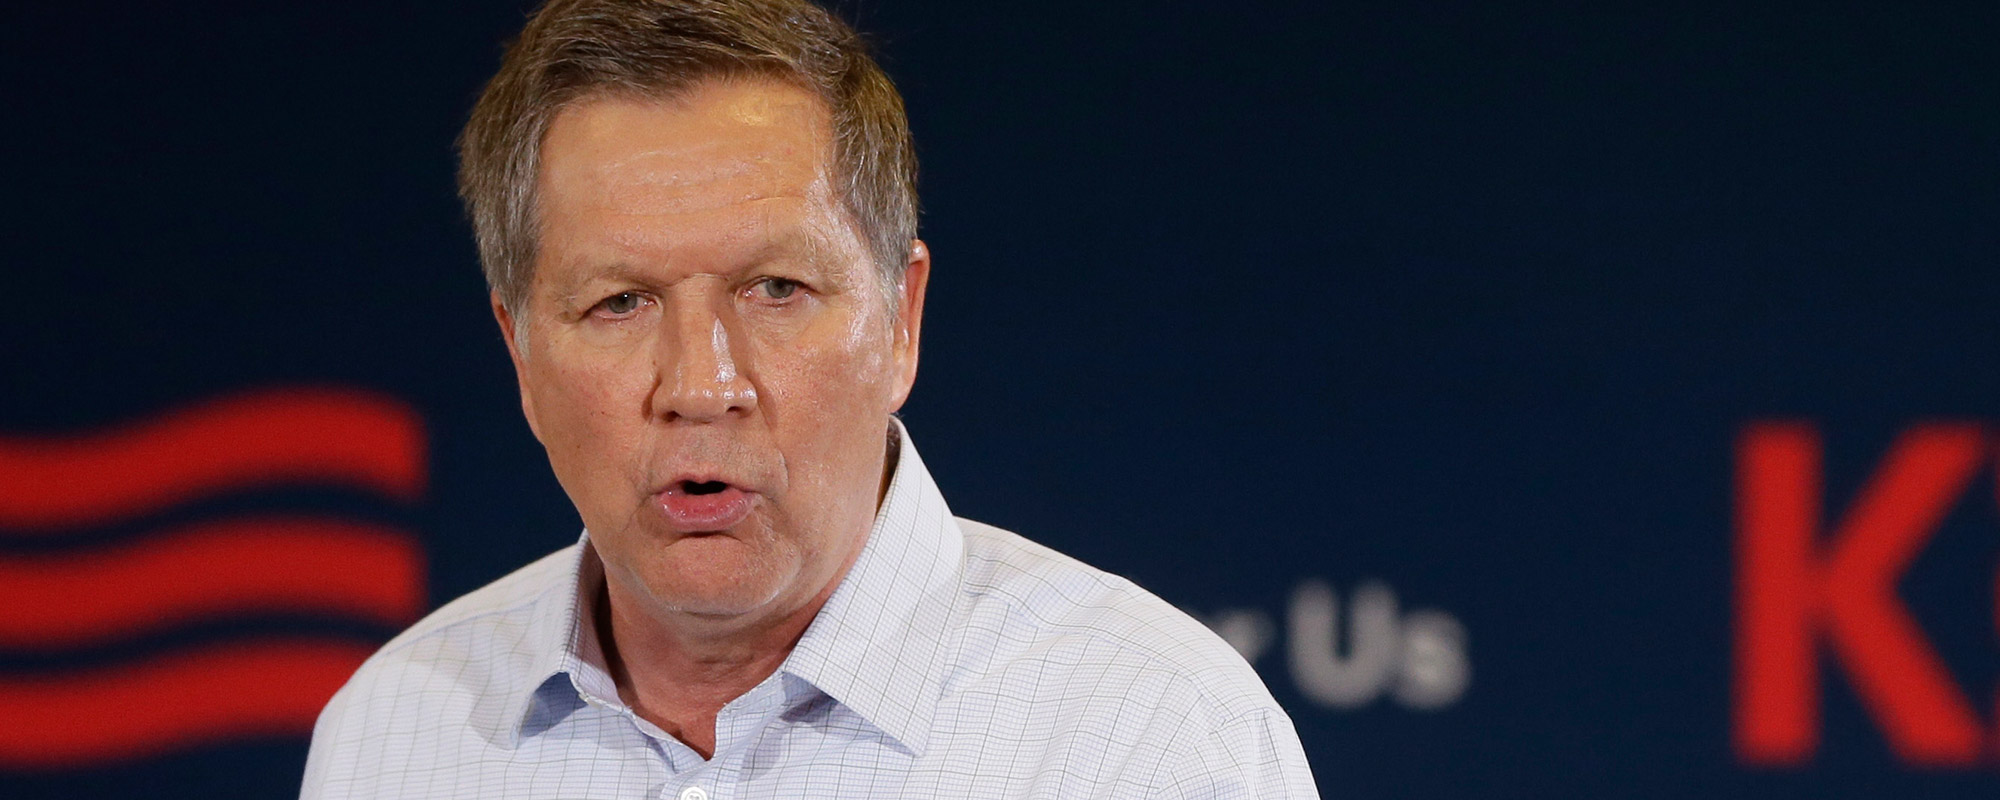 Republican presidential candidate, Ohio Gov. John Kasich, addresses supporters during a town hall meeting, Tuesday, Feb. 16, 2016, in Livonia, Mich.